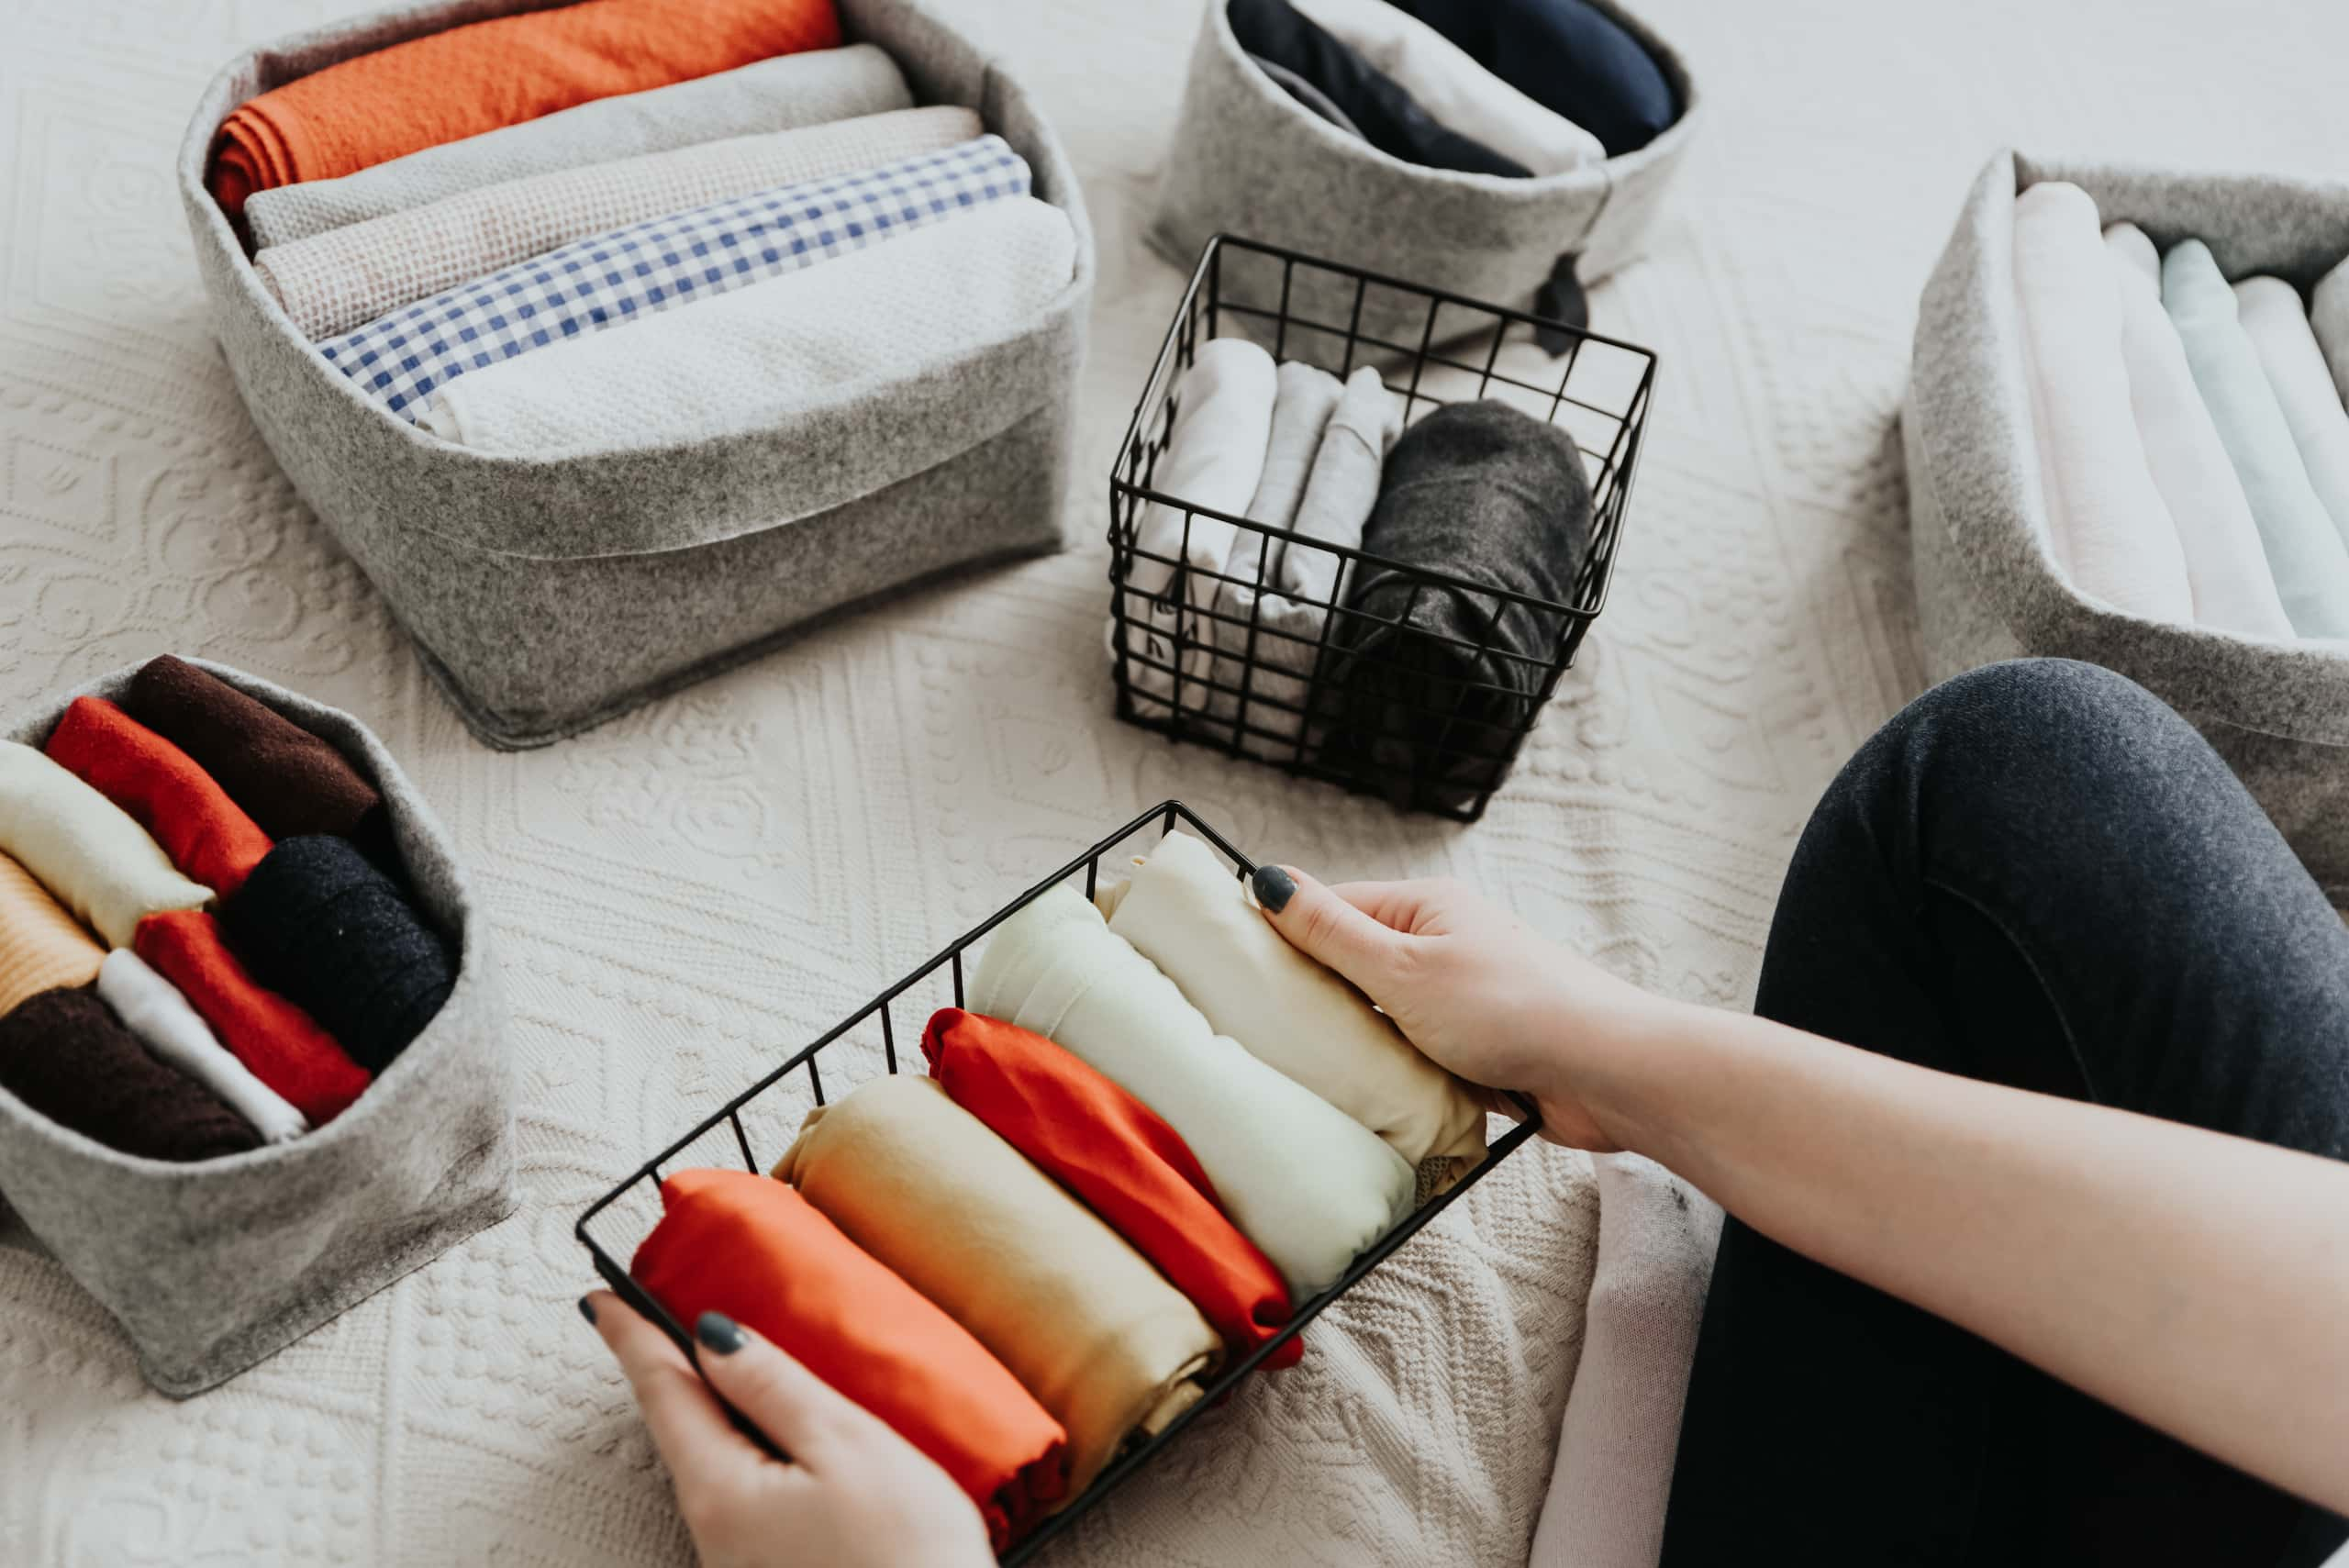 folding clothes small baskets